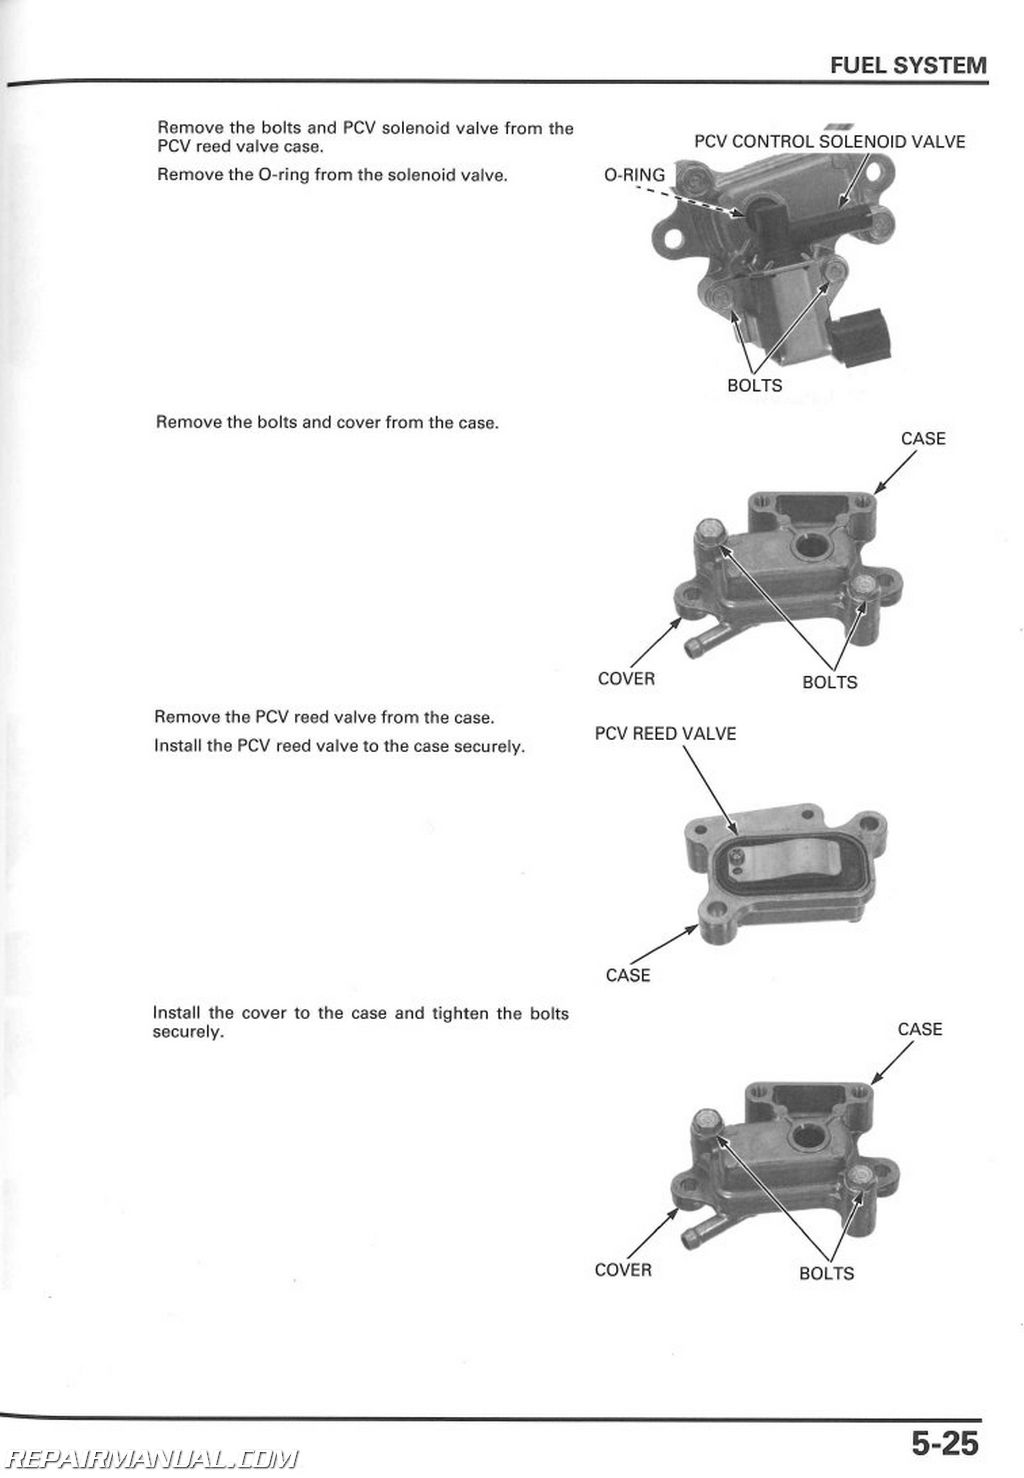 honda metropolitan wiring diagram 2002 mitsubishi eclipse gs 2009 chf50 scooter service manual